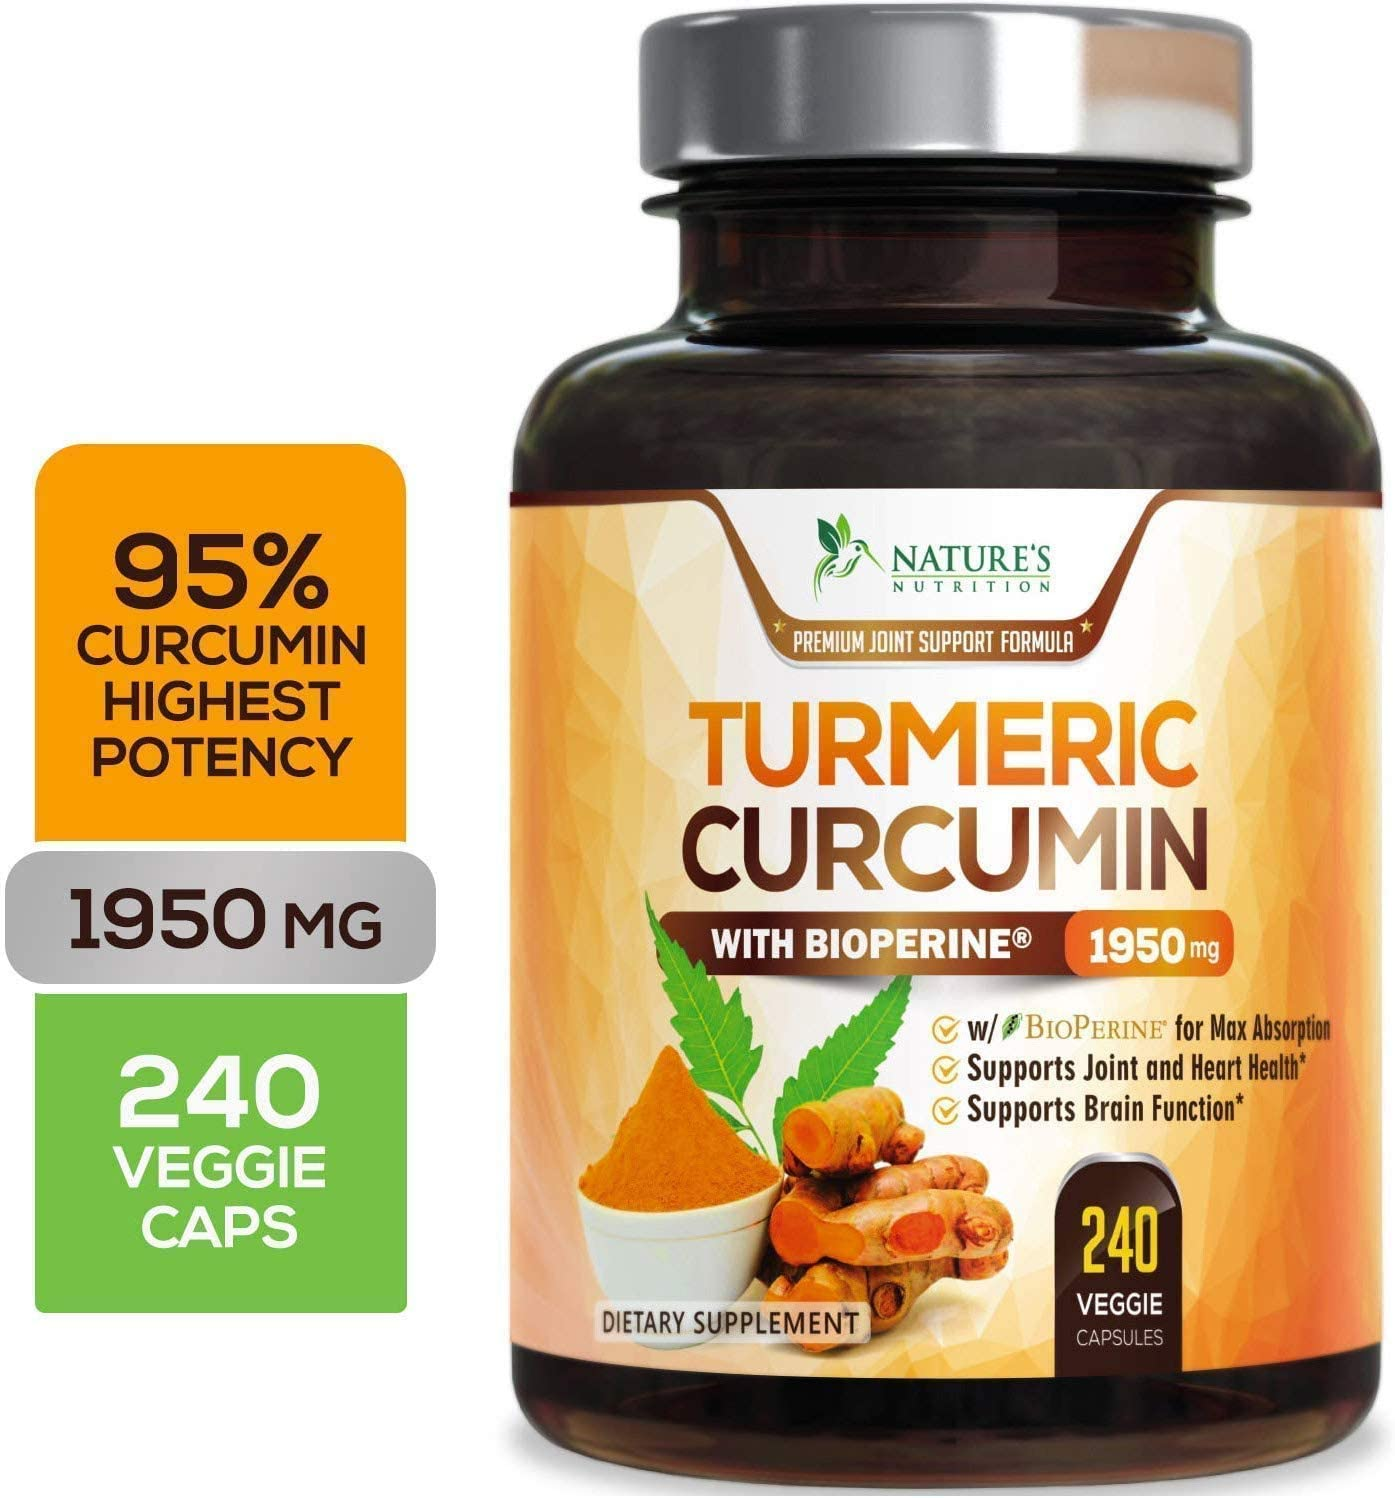 Turmeric Curcumin with BioPerine 95% Curcuminoids 1950mg with Black Pepper for Best Absorption, Made in USA, Best Vegan Joint Support, Turmeric Supplement Pills by Natures Nutrition - 240 Capsules